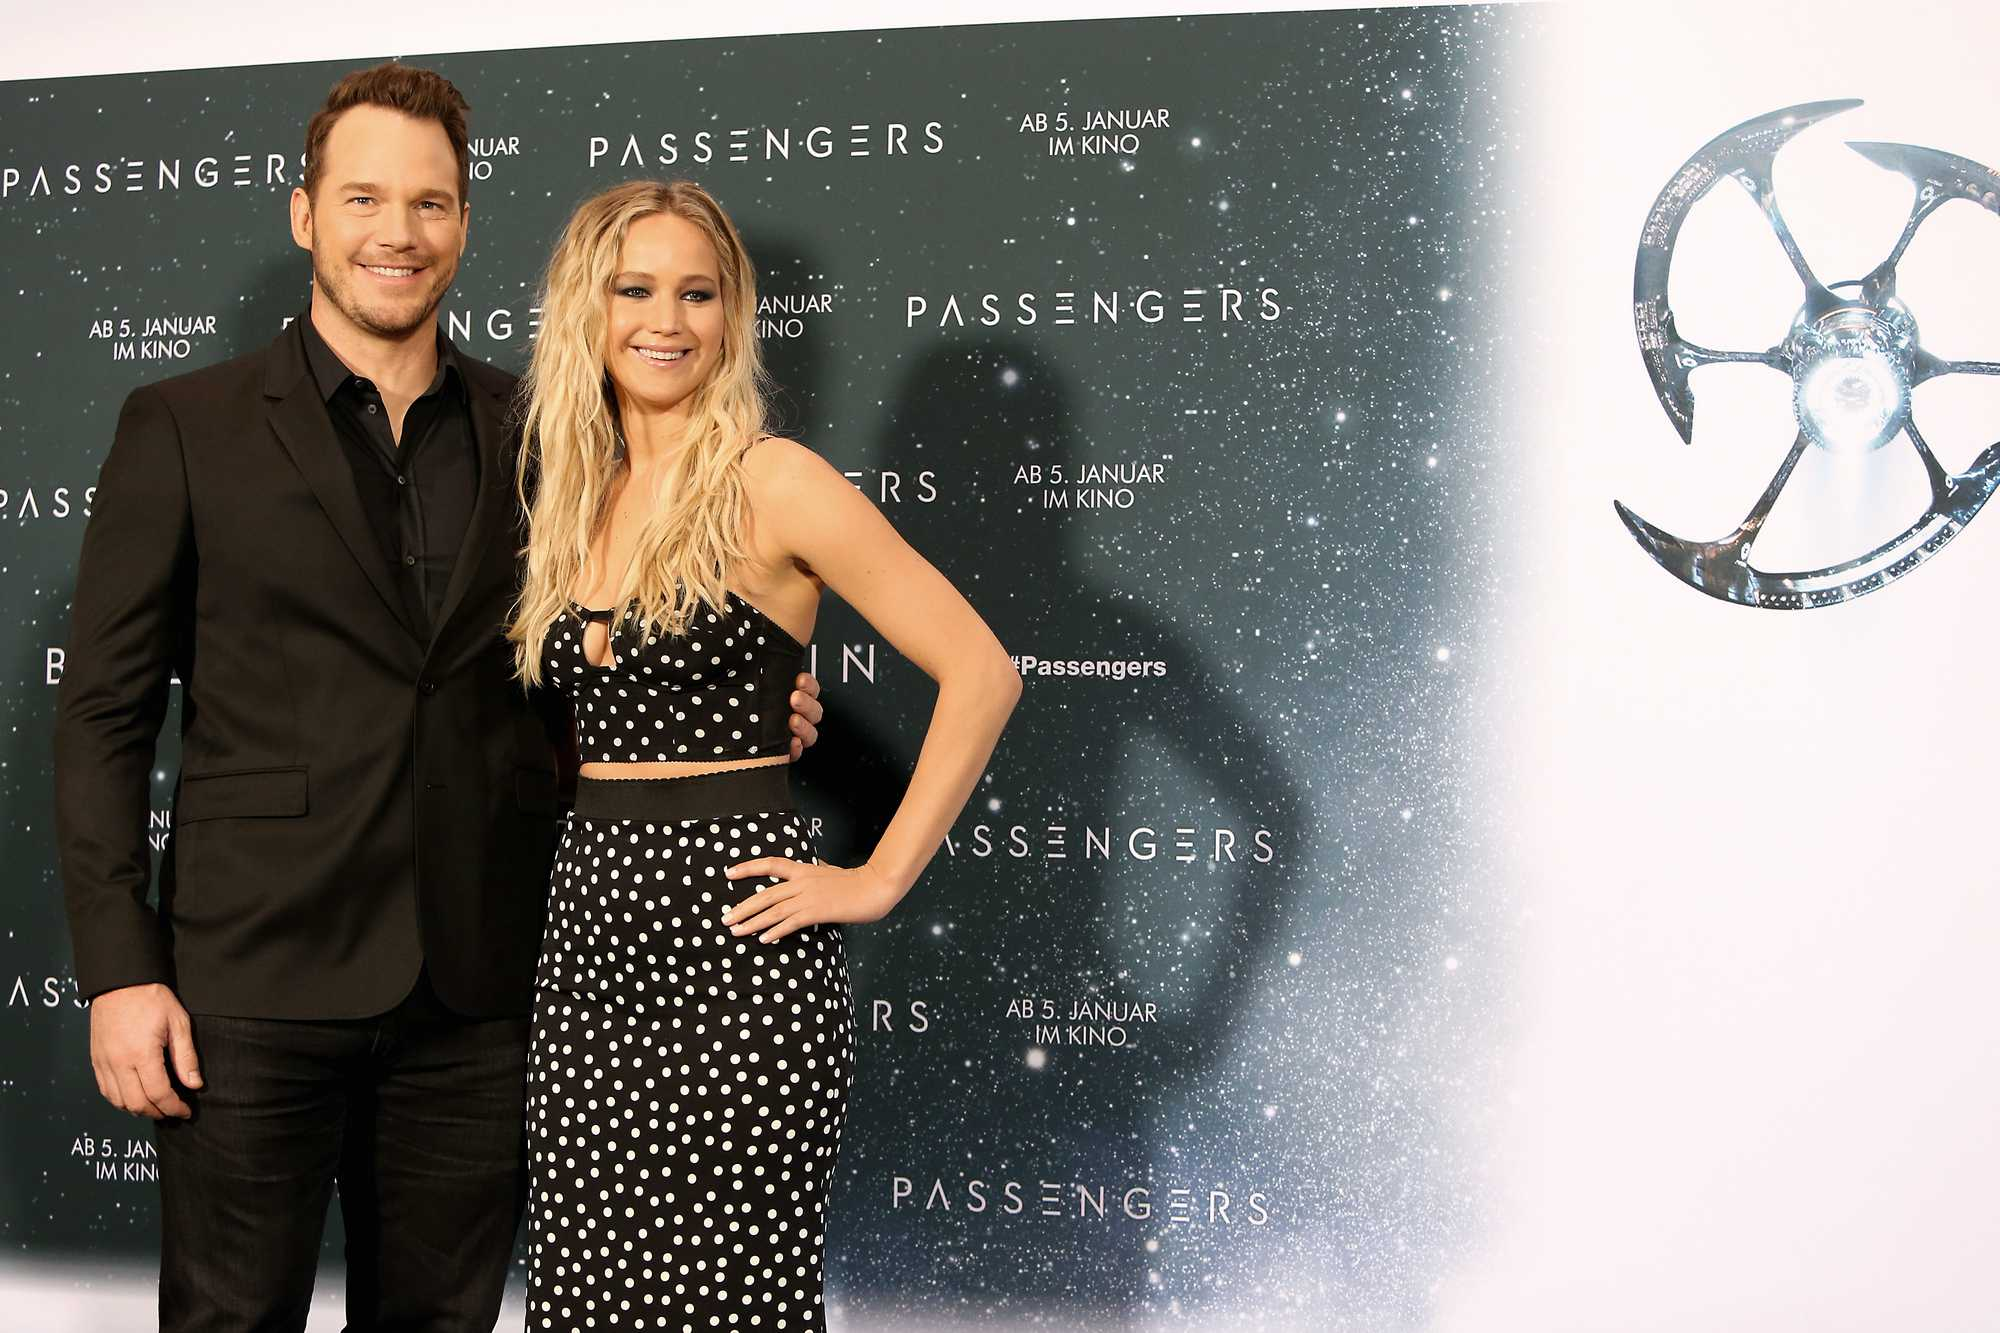 http://jenniferlawrencedaily.com/gallery/albums/Events/2016/Passengers%20Berlin%20Photocall%20Press%20Conference%20-%20December%202/24.jpg